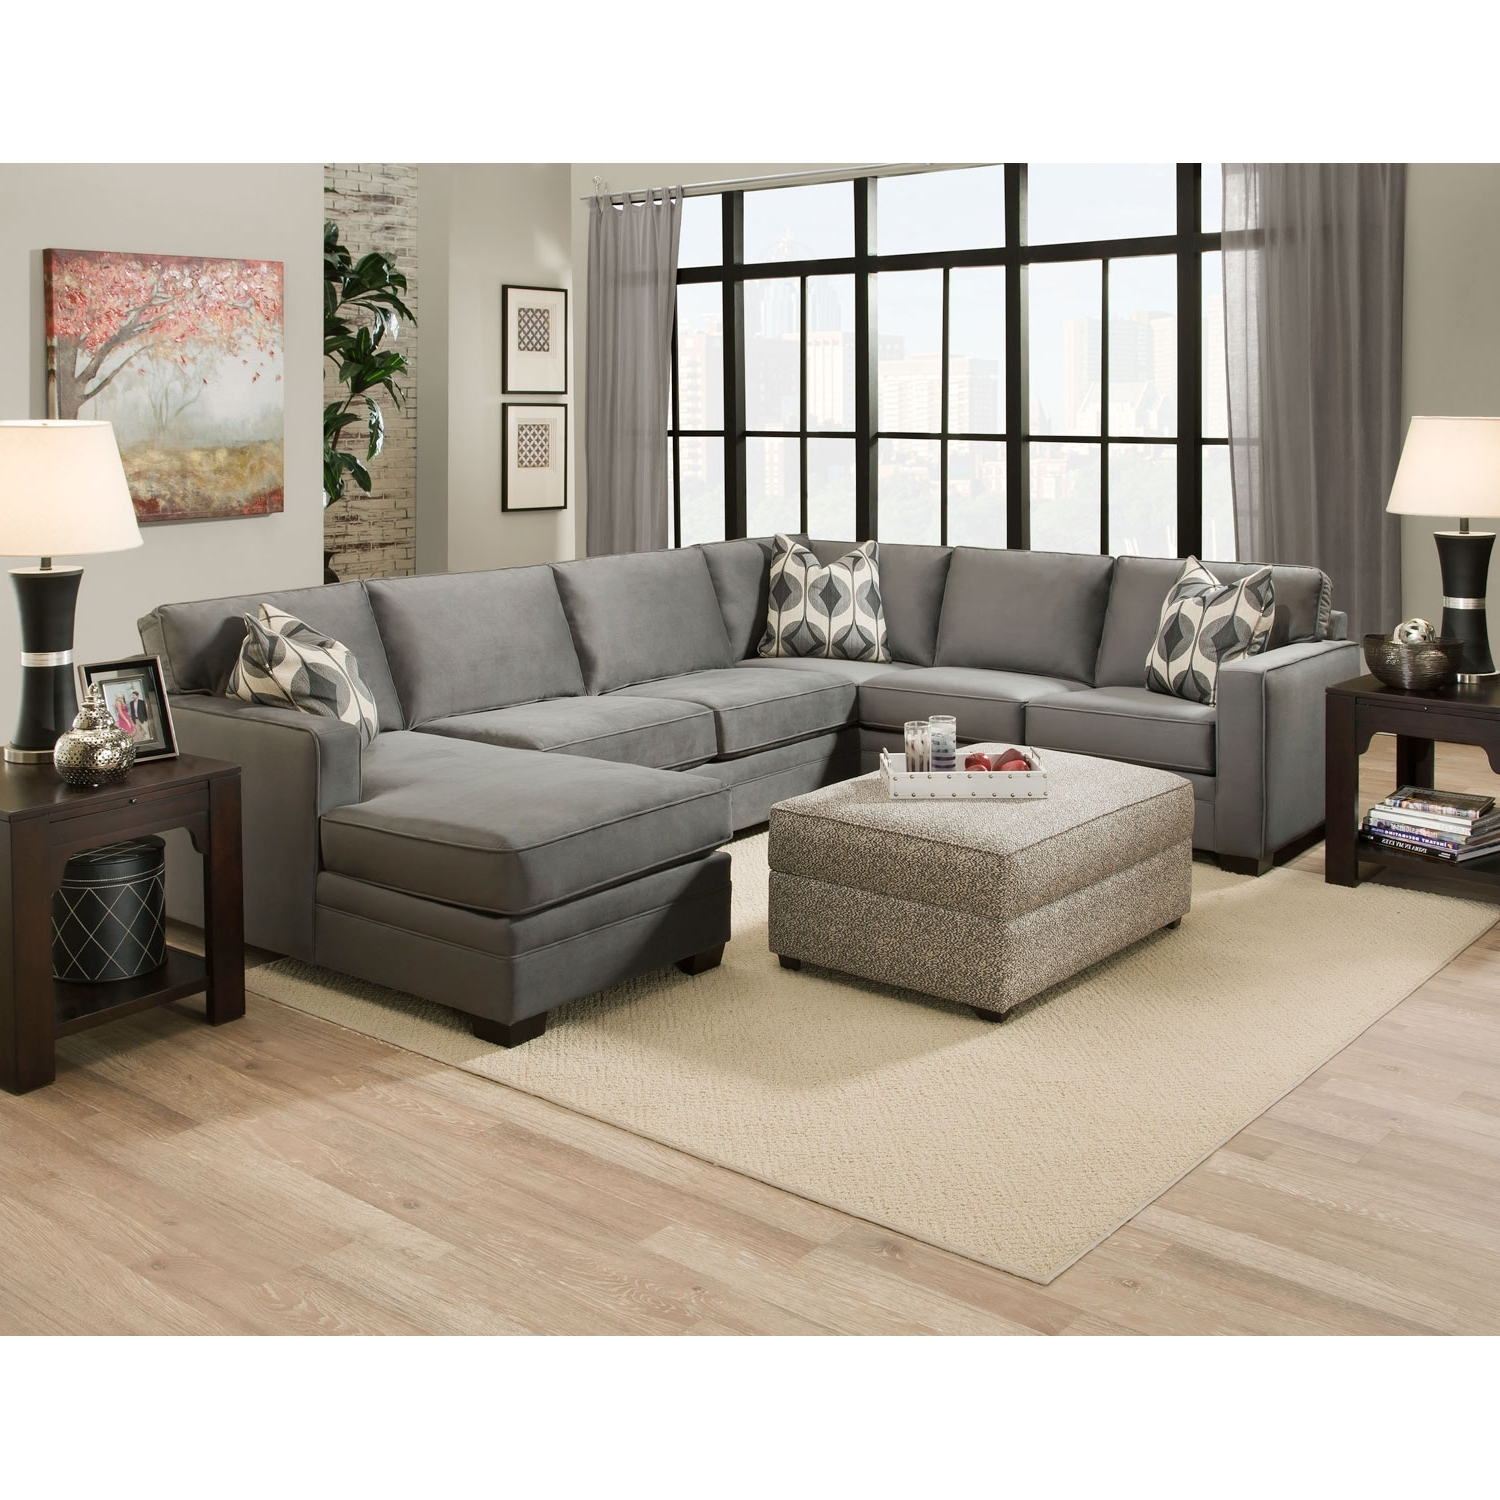 Well Known Gray Extra Large U Shaped Sectional Sofa With Chaise And Accent With Extra Large Sofas (View 12 of 20)